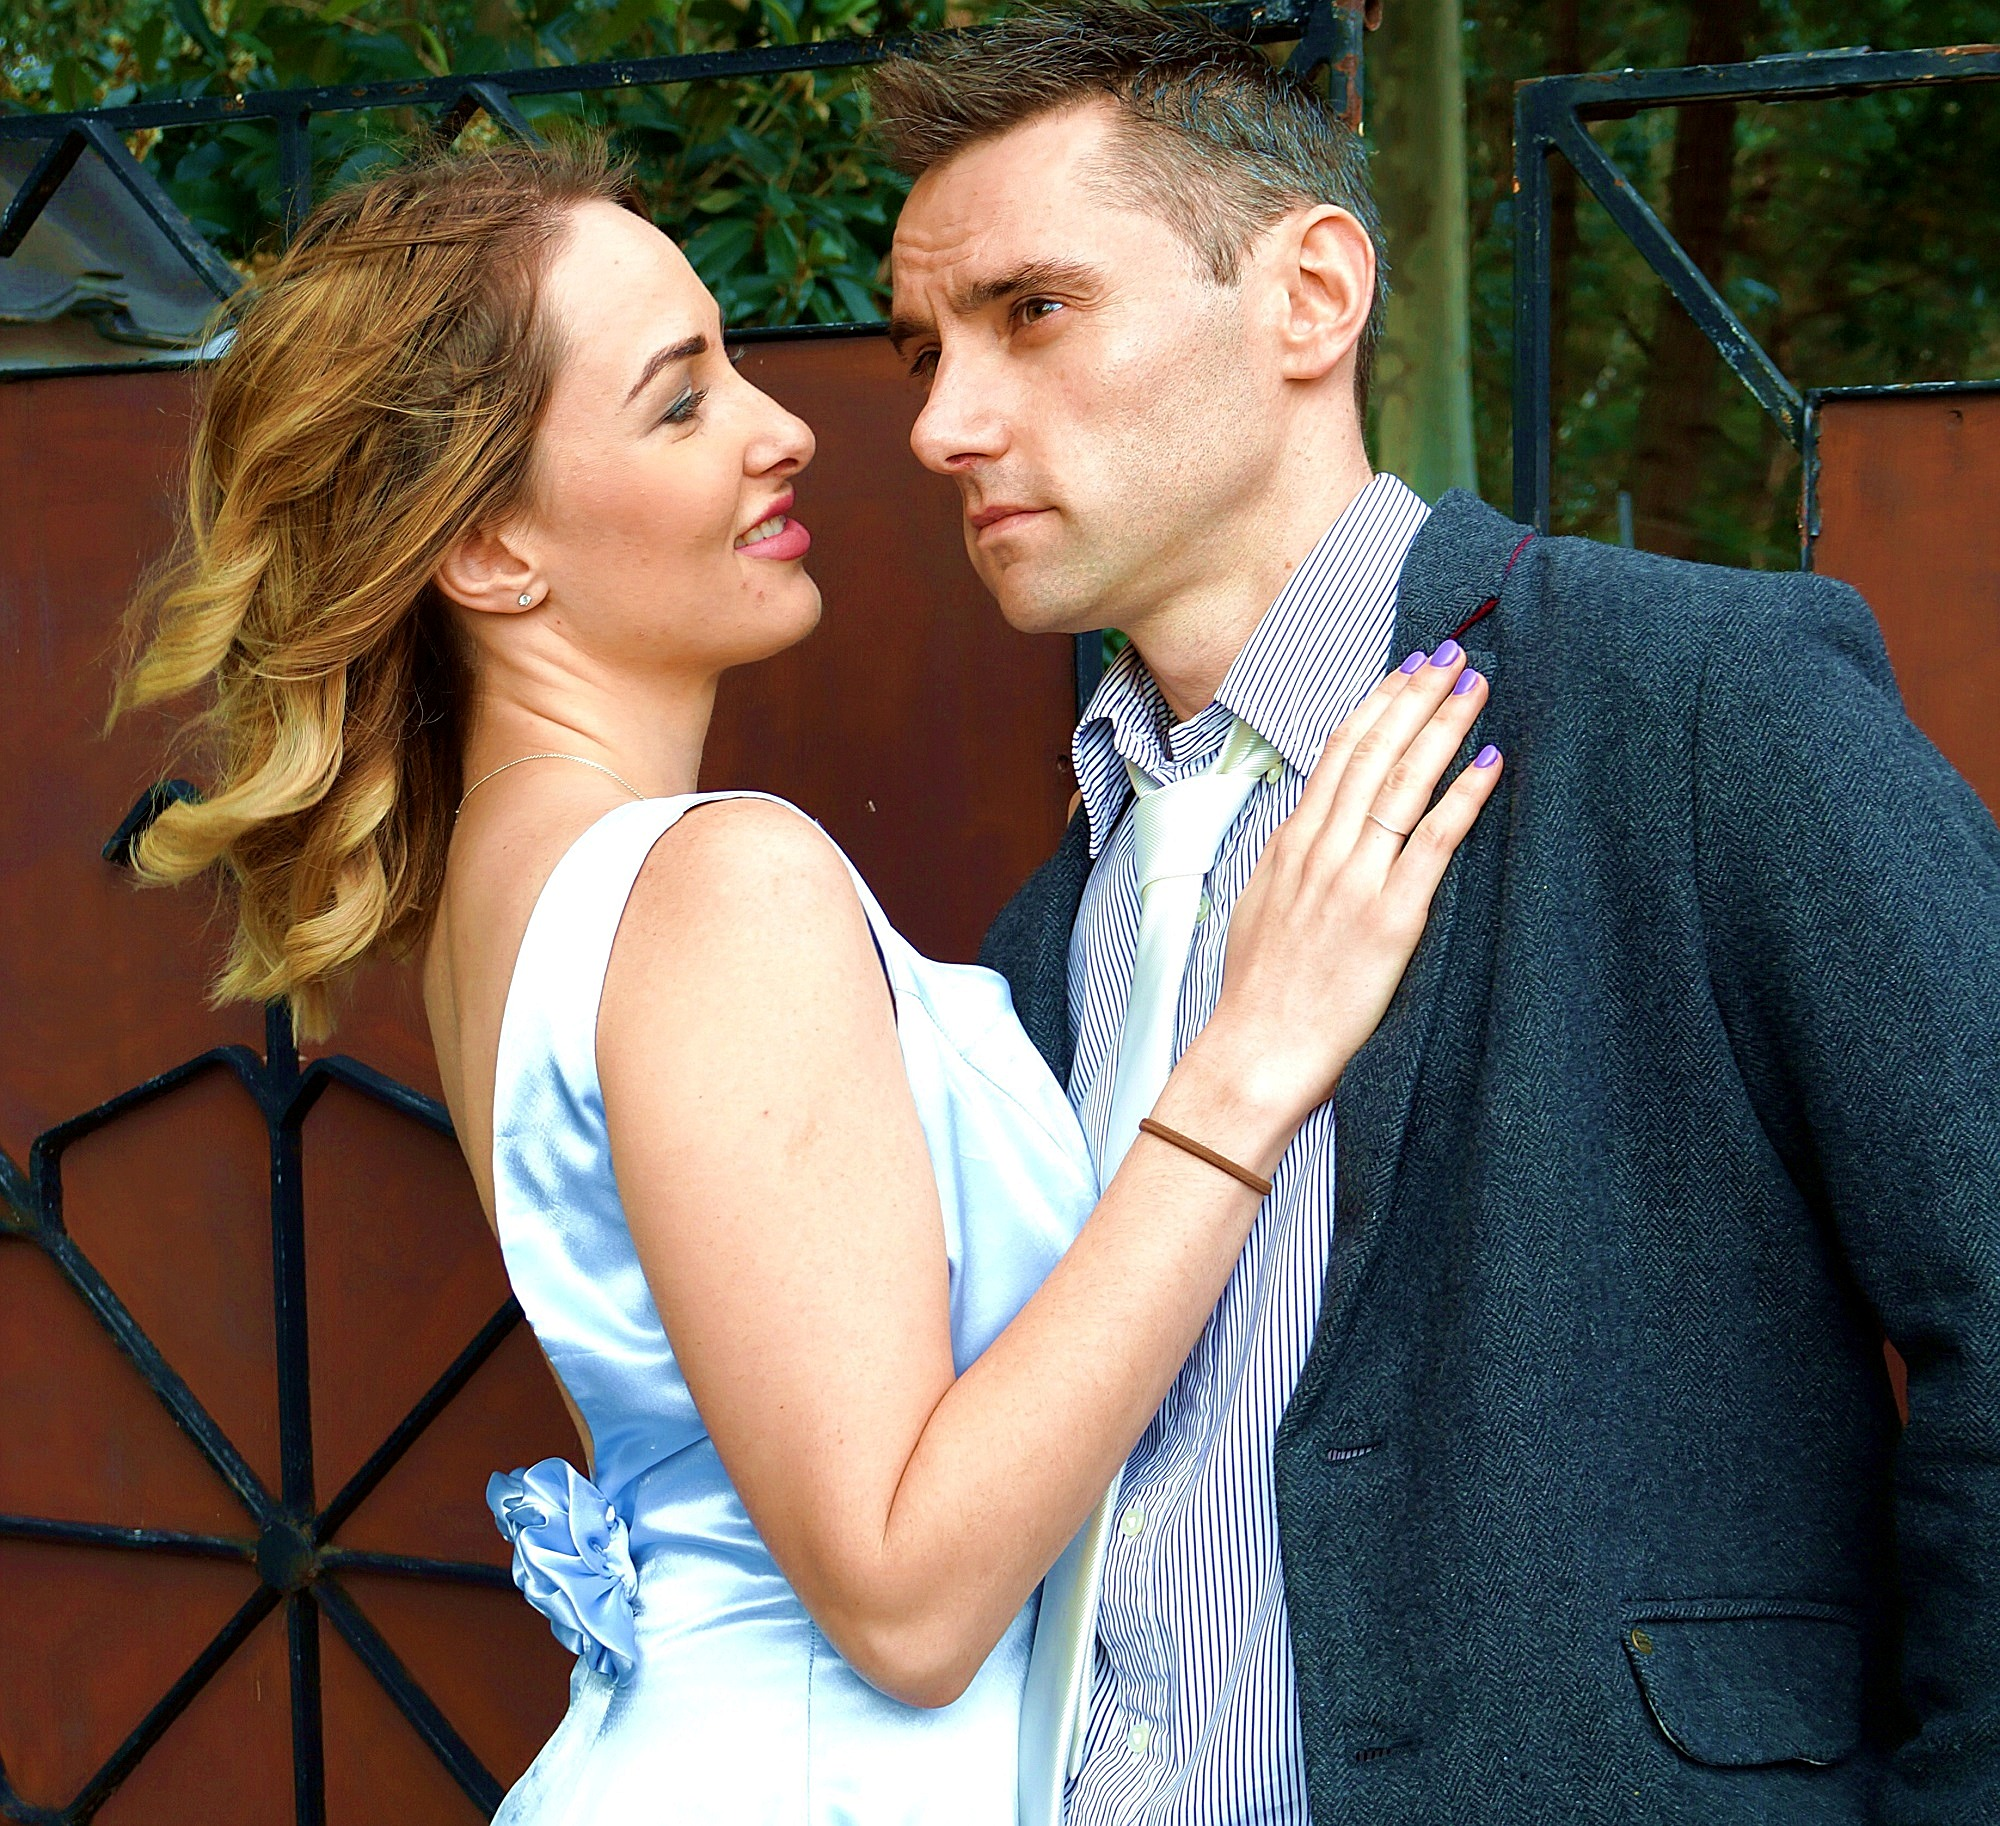 Coral (Steph Locke) is drawn to newlywed Rick (Stewart Mulligan) in the play  Away , celebrating its 30th anniversary this year.